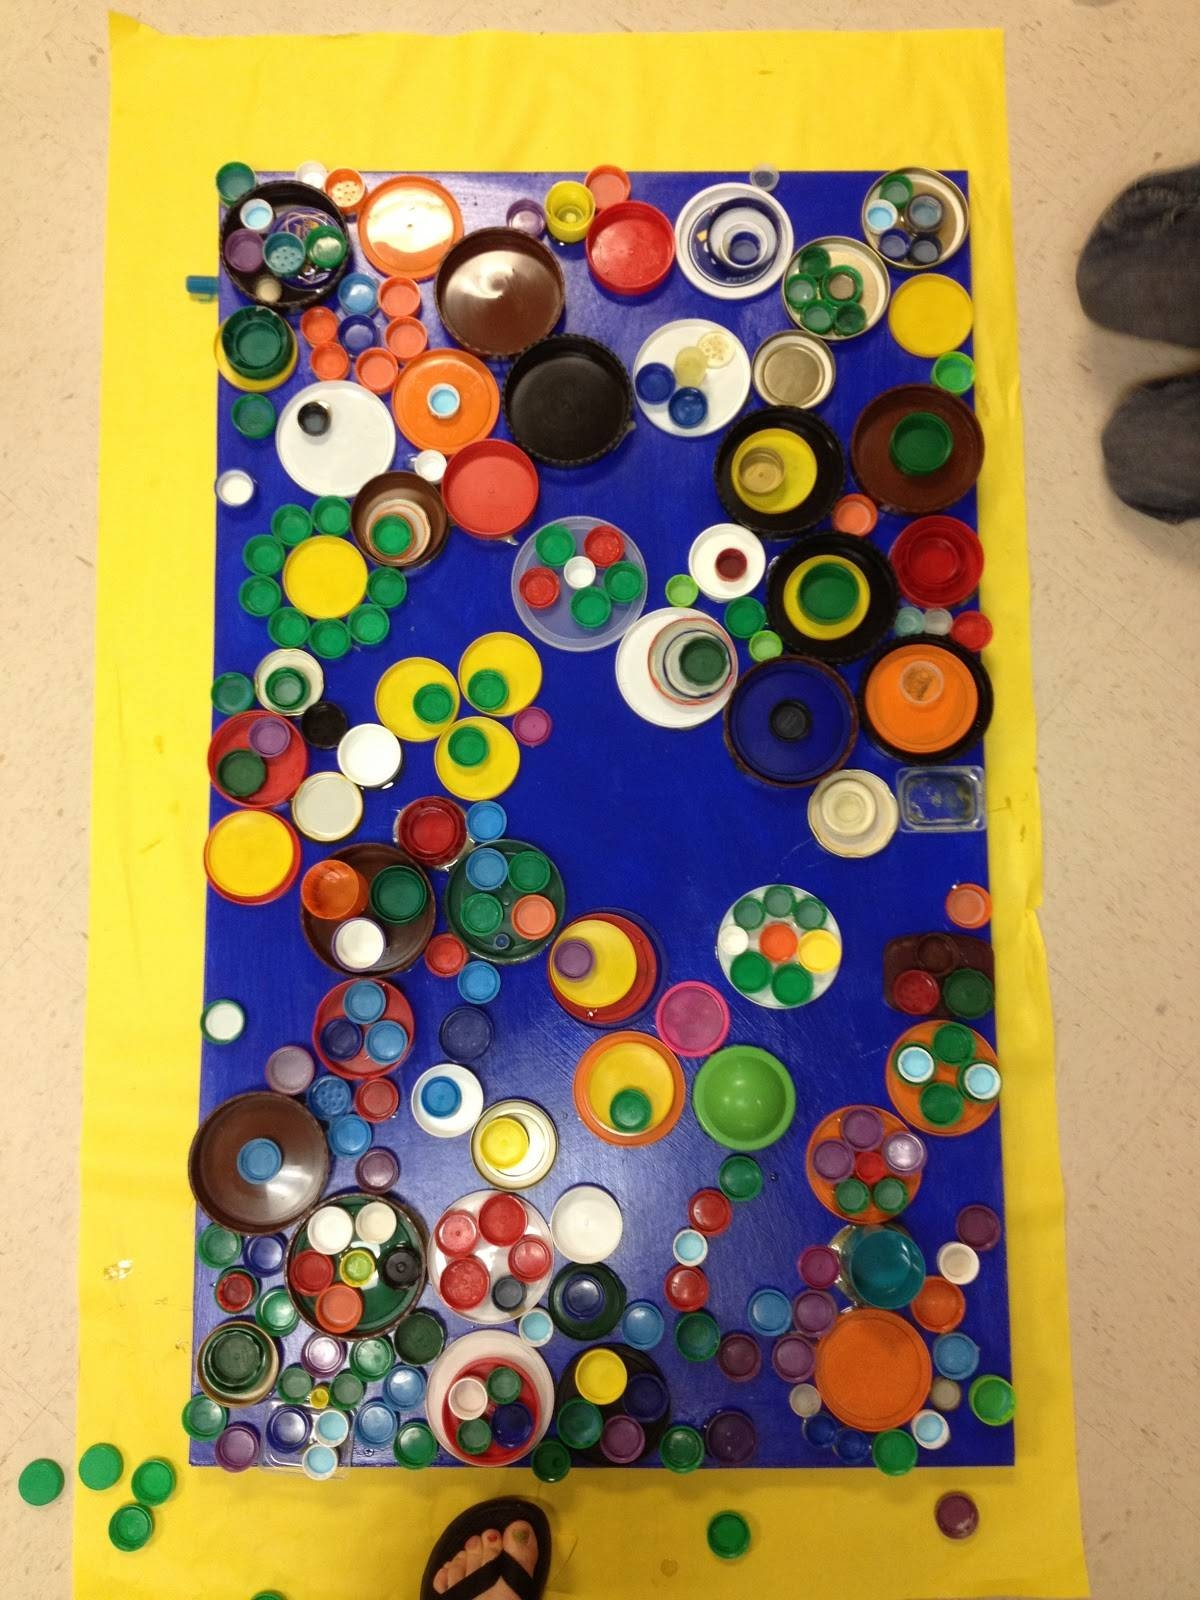 Candice Ashment Art: Reduce*reuse*recycle Bottle Lids Wall Art Pertaining To Newest Recycled Wall Art (Gallery 10 of 30)